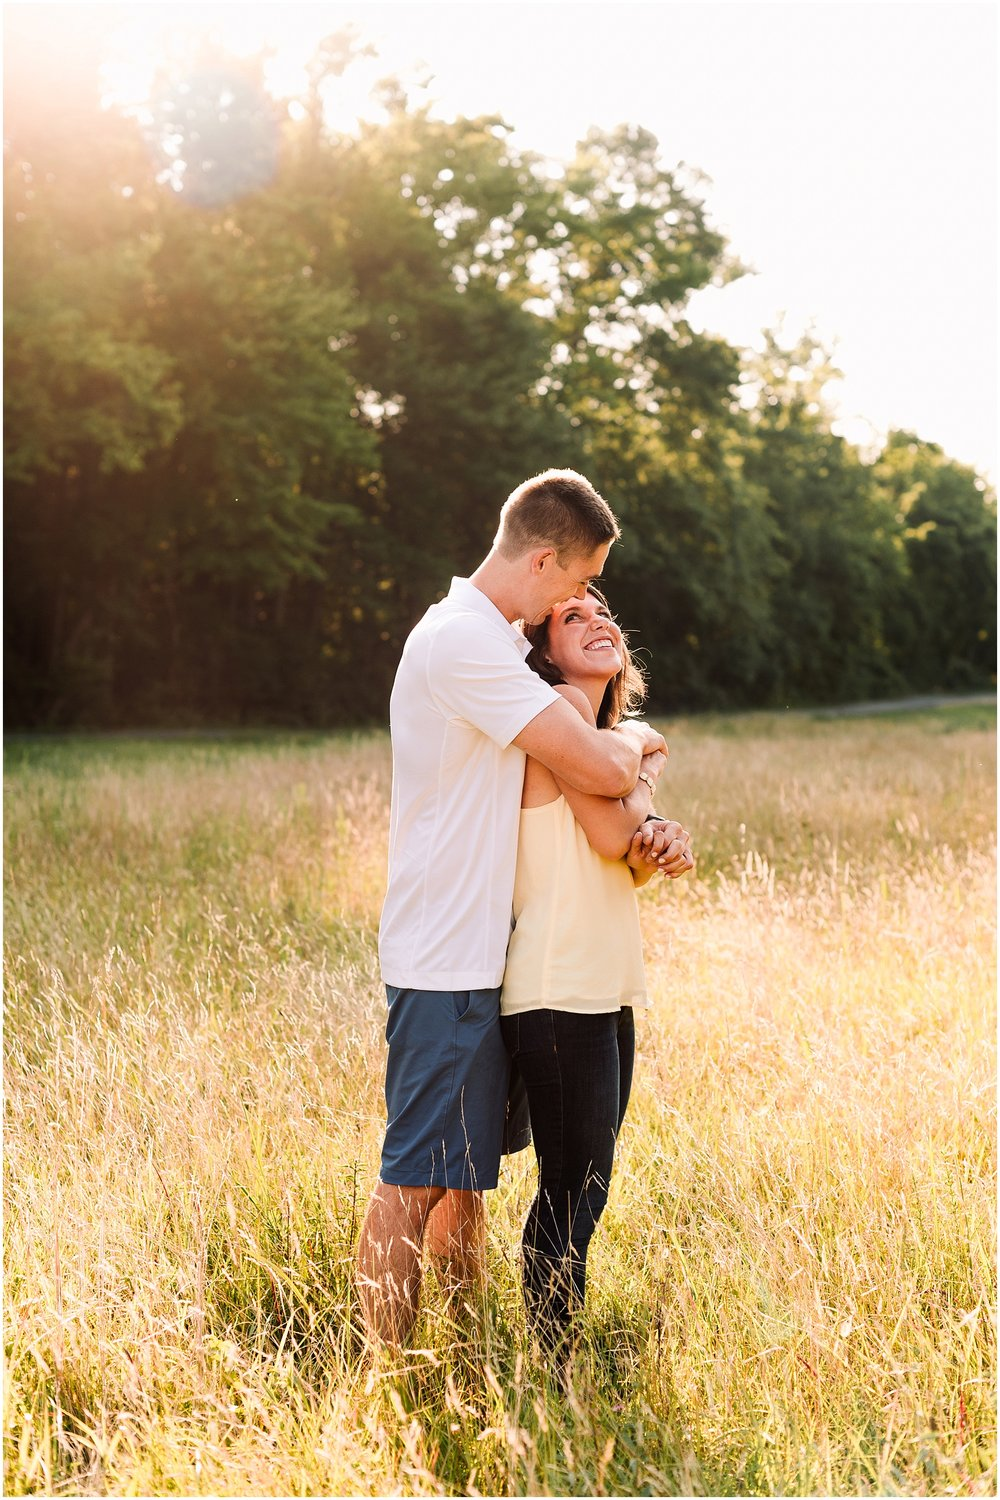 Hannah Leigh Photography Edgewater MD Engagement Session_4915.jpg